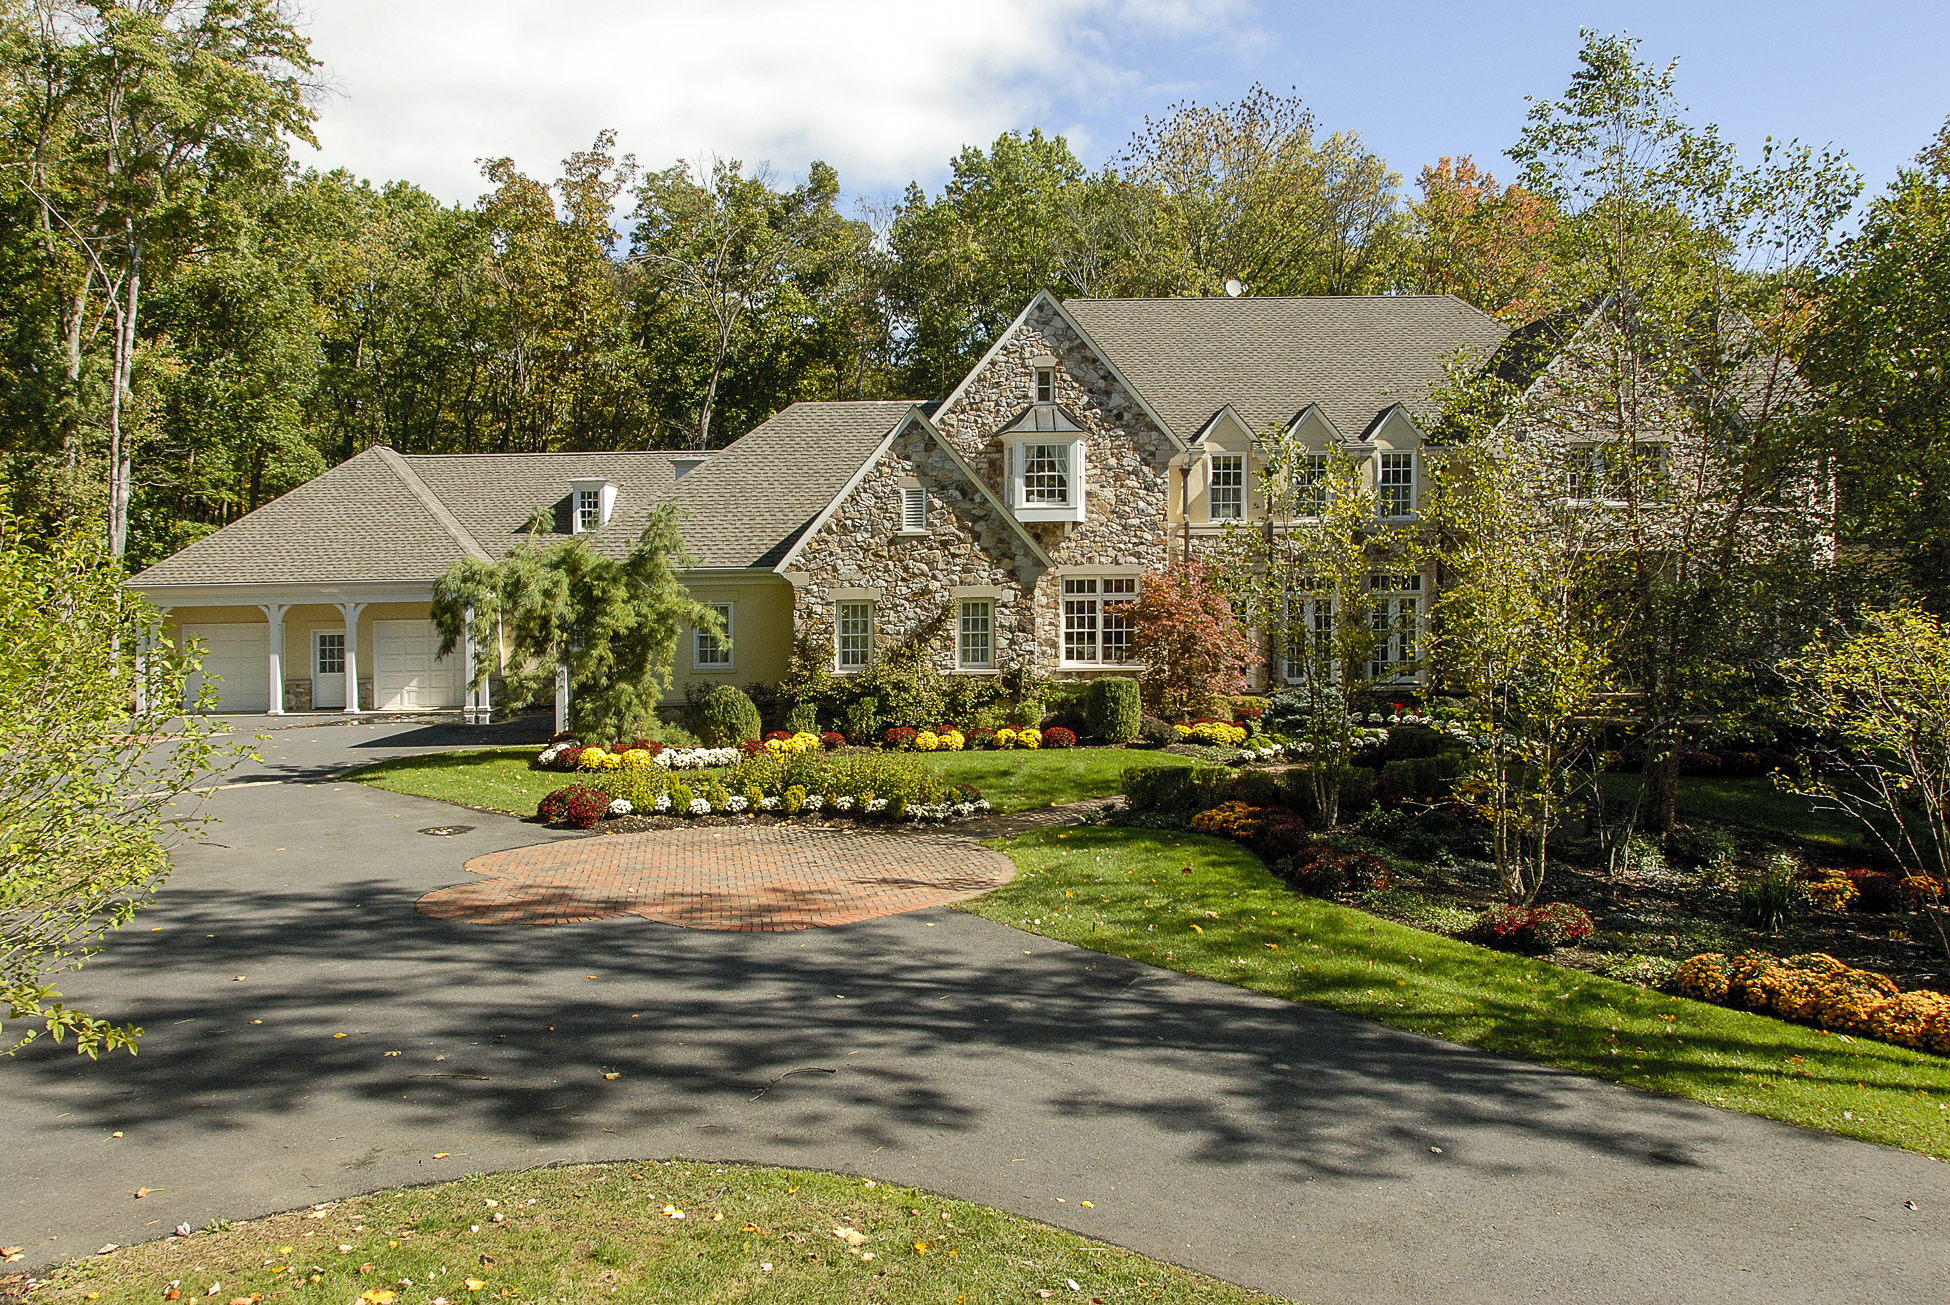 Частный односемейный дом для того Продажа на Magnificent Manor Home in Princeton's Coveted Rushbrook 27 Running Cedar Road Princeton, Нью-Джерси, 08540 Соединенные Штаты